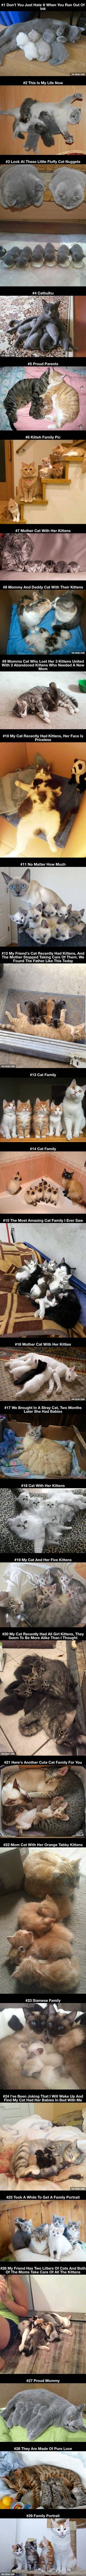 29 Proud Cat Mommies With Their Kittens - 9GAG